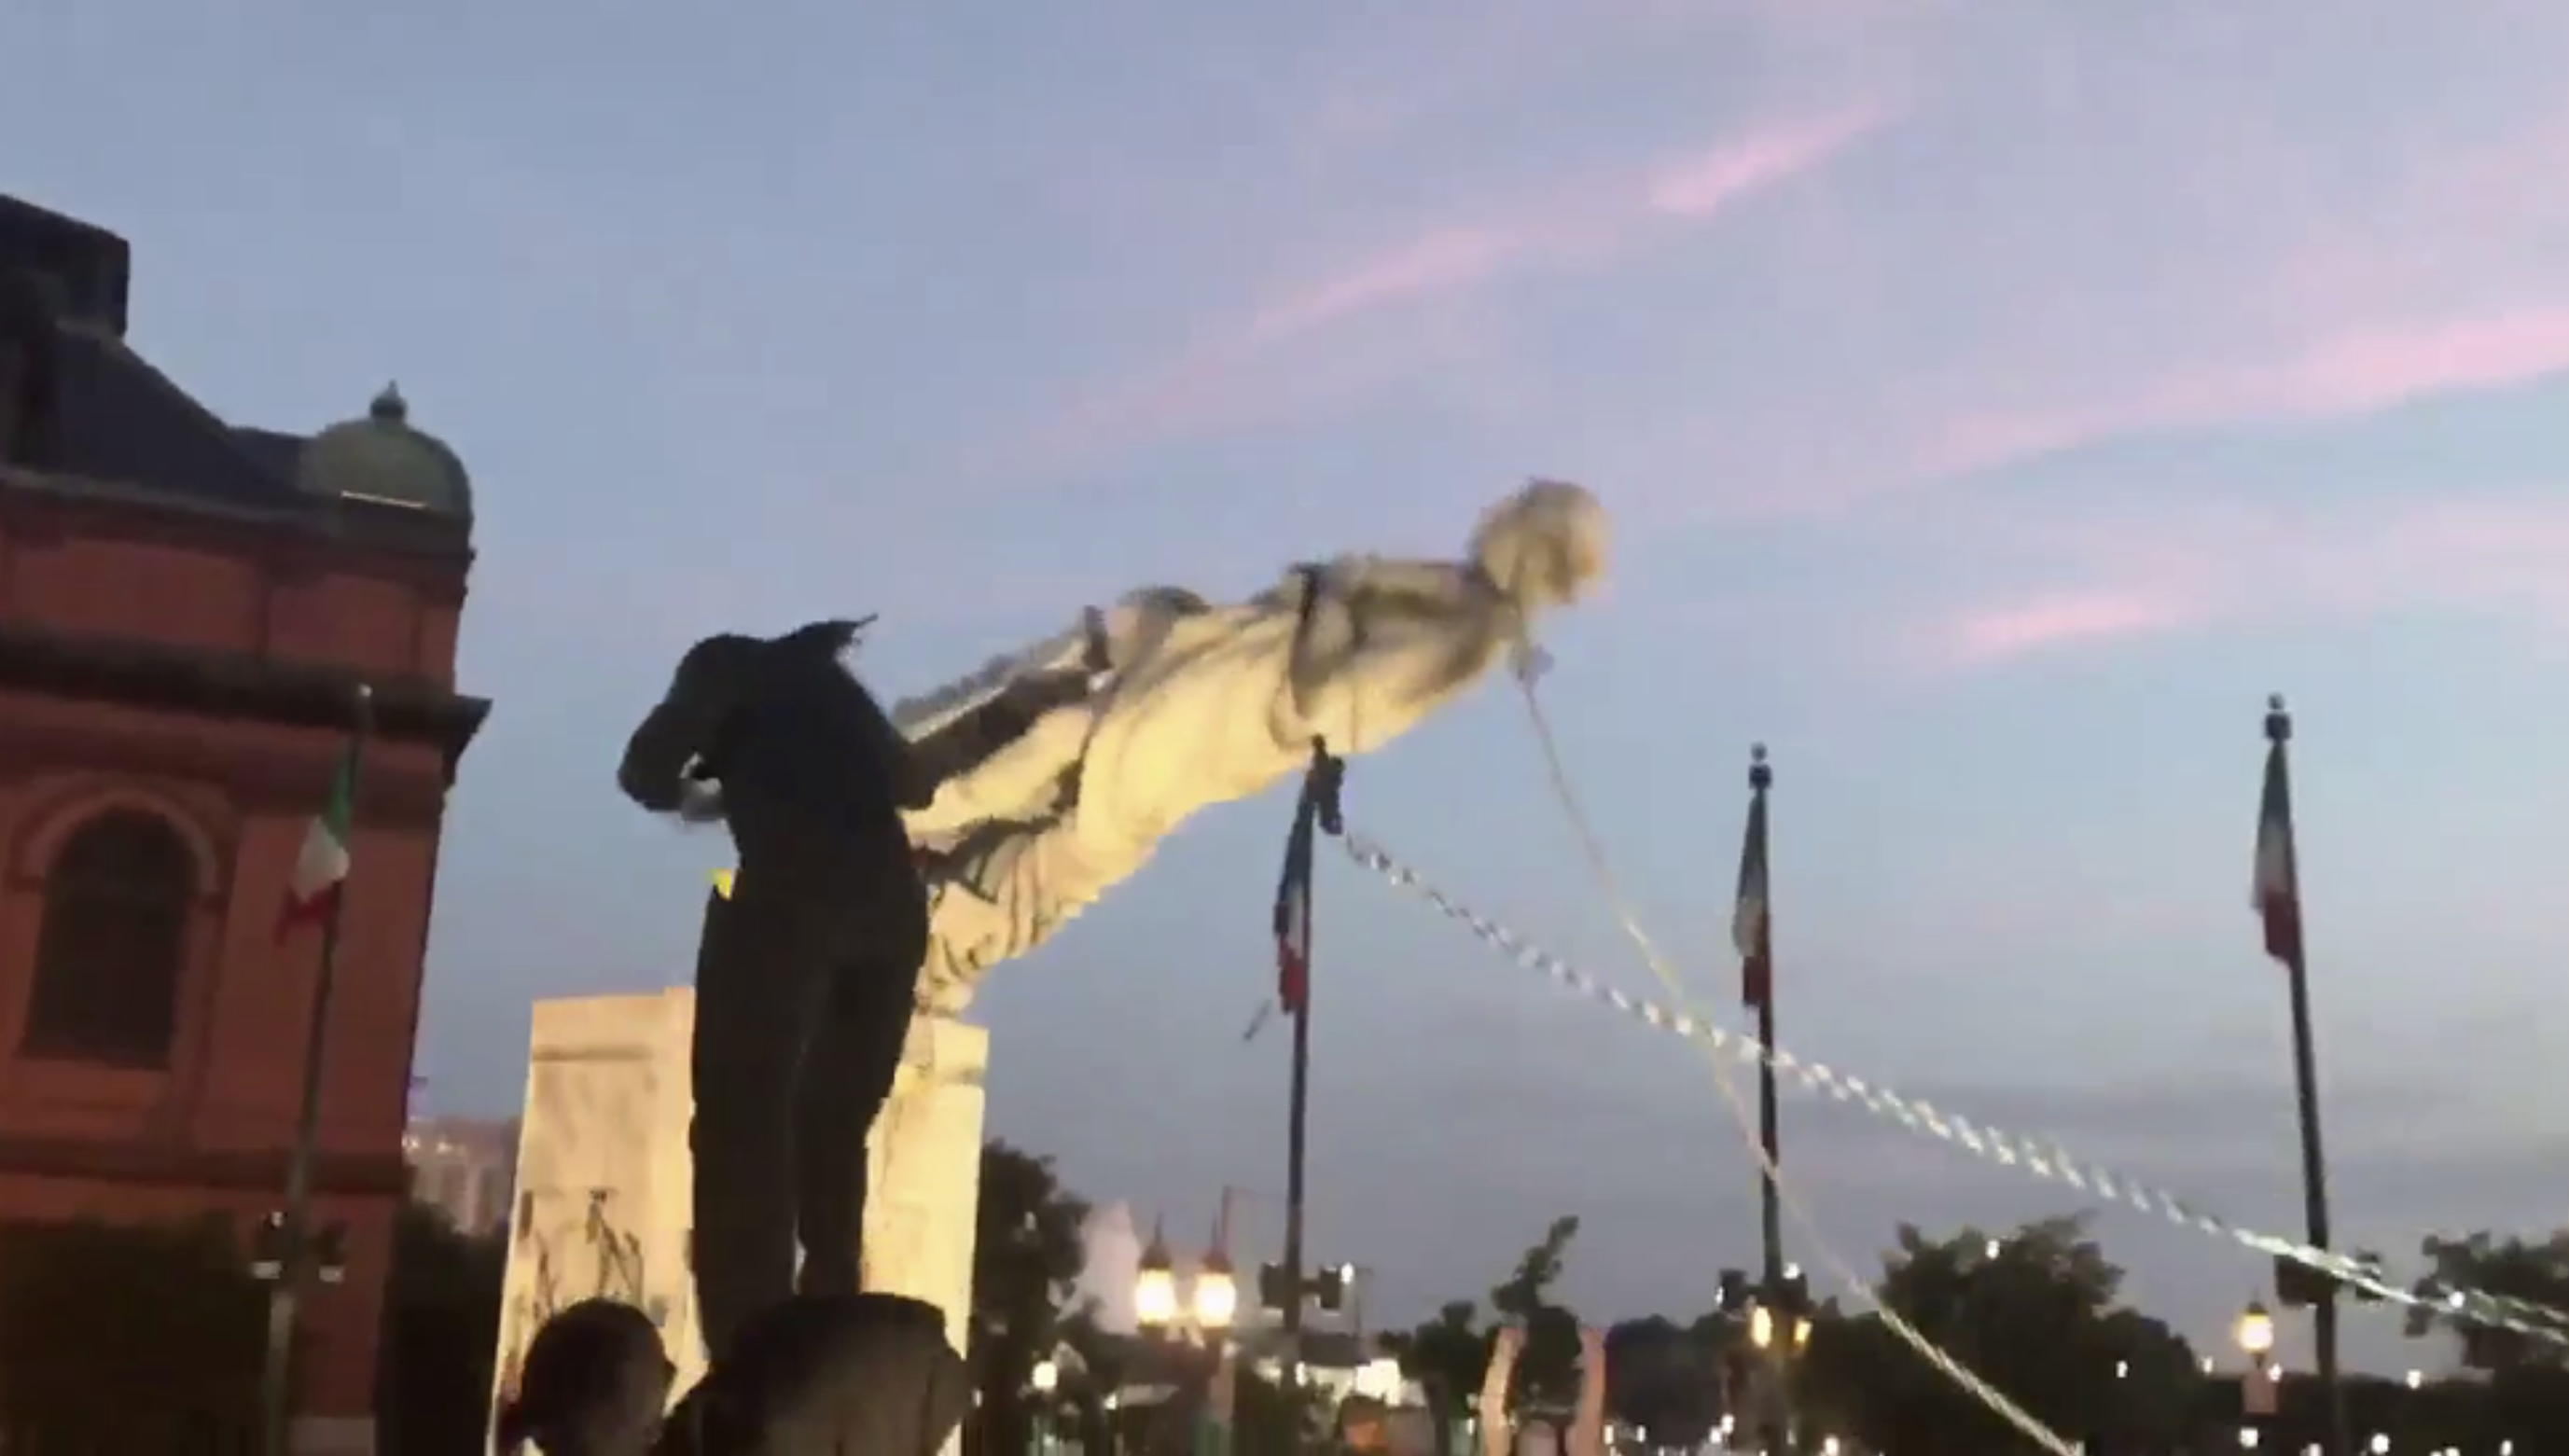 Columbus statue toppled by Baltimore protesters